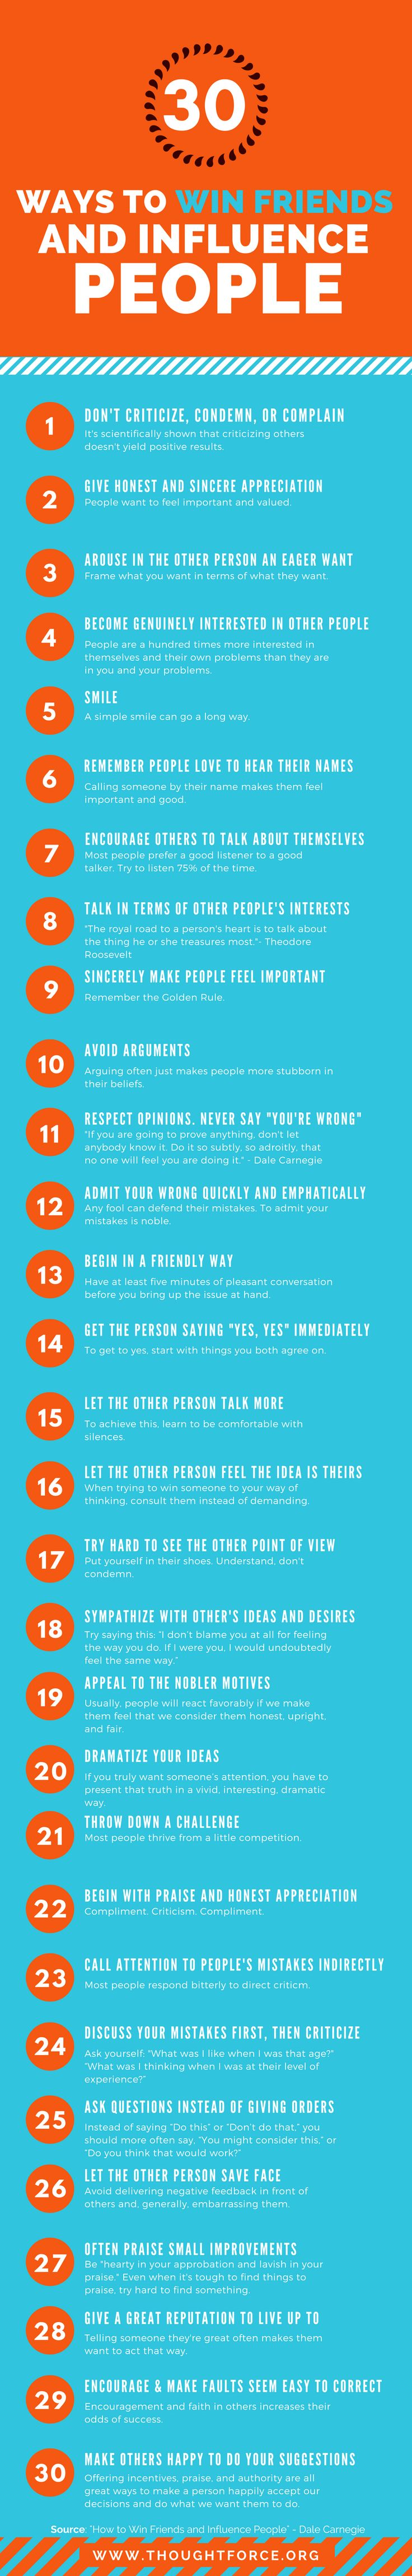 10 best ideas how to win friends and influence people